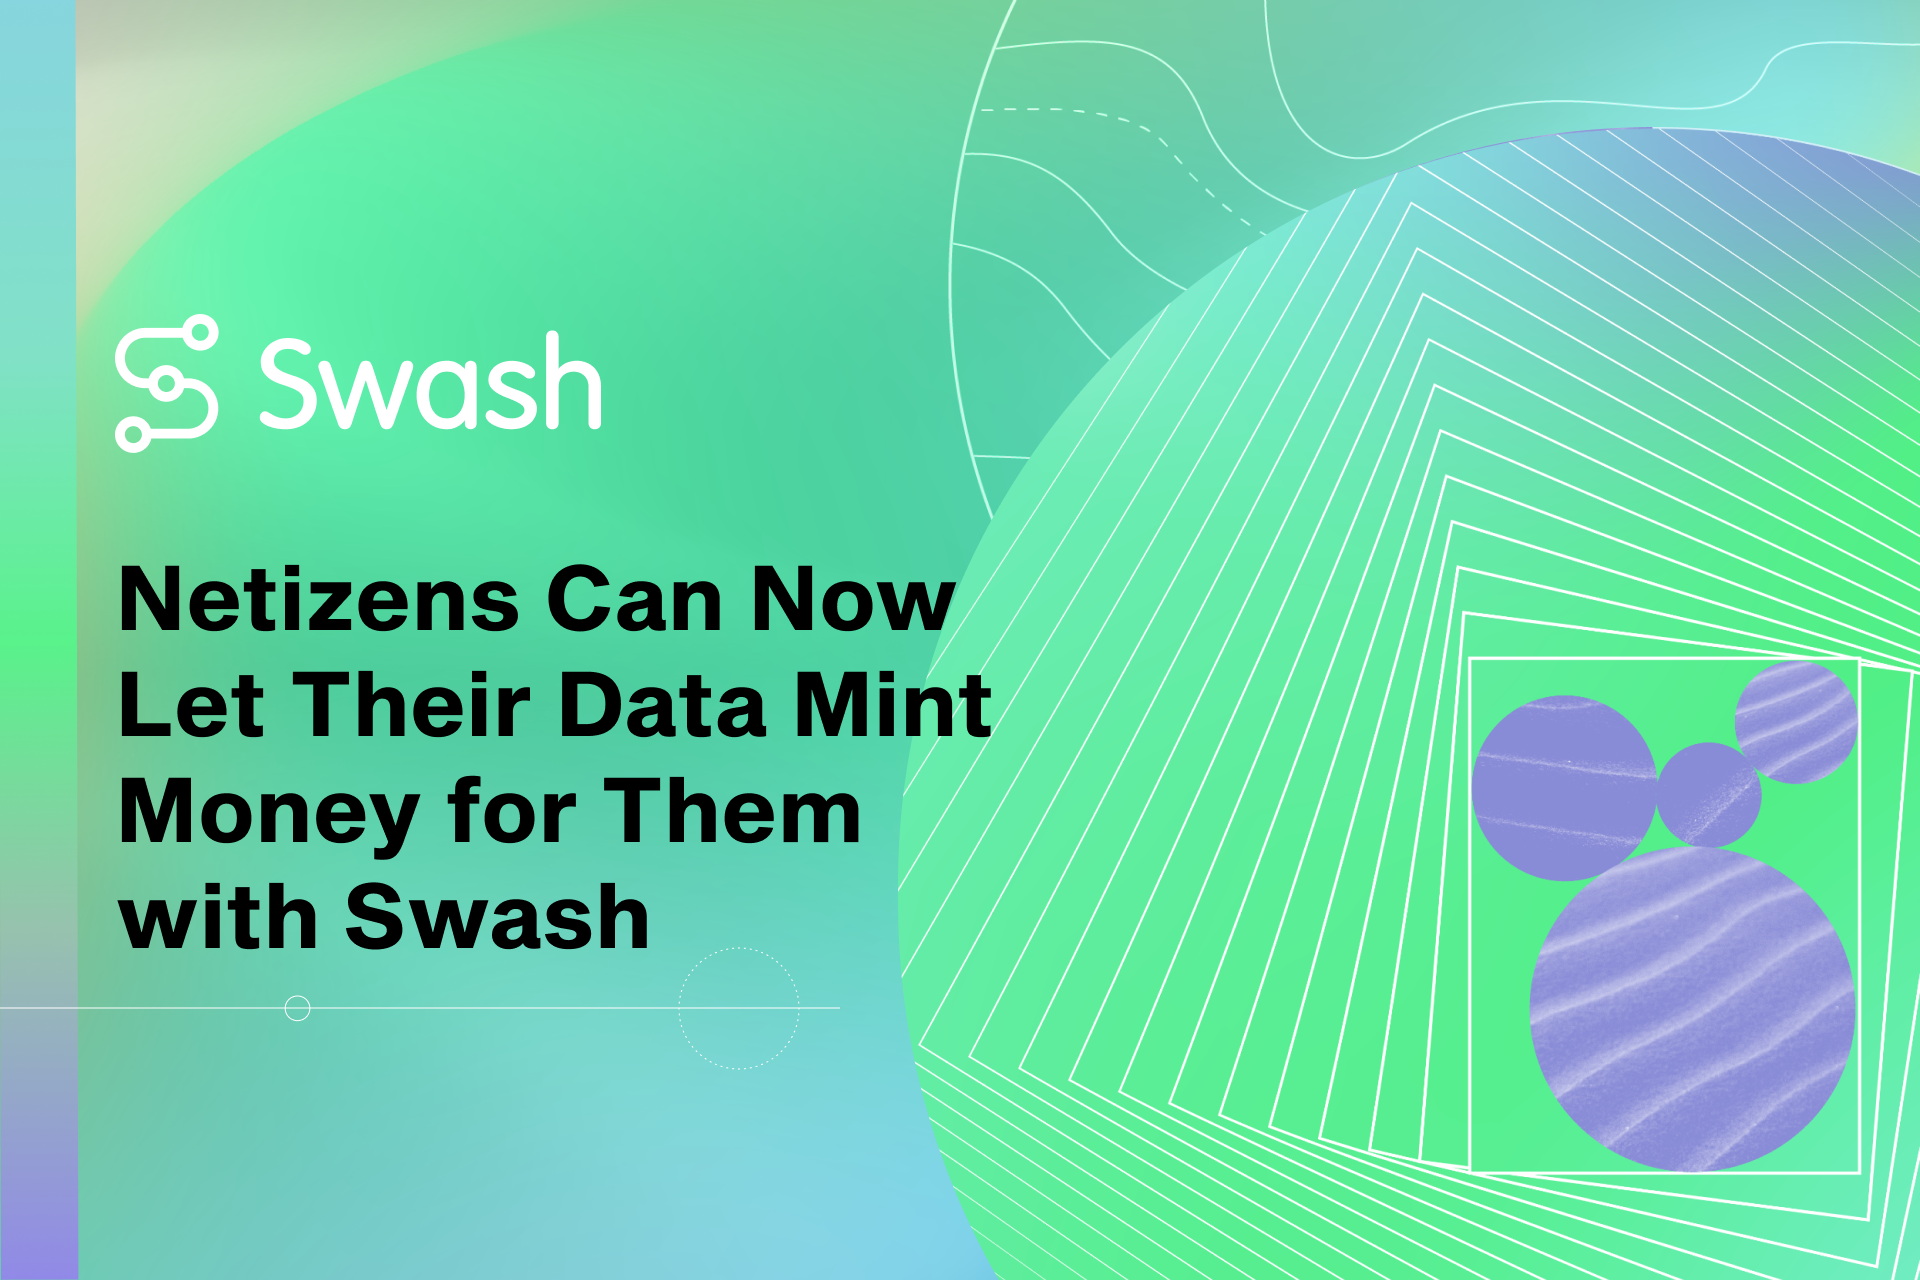 Netizens Can Now Let Their Data Mint Money for Them with Swash